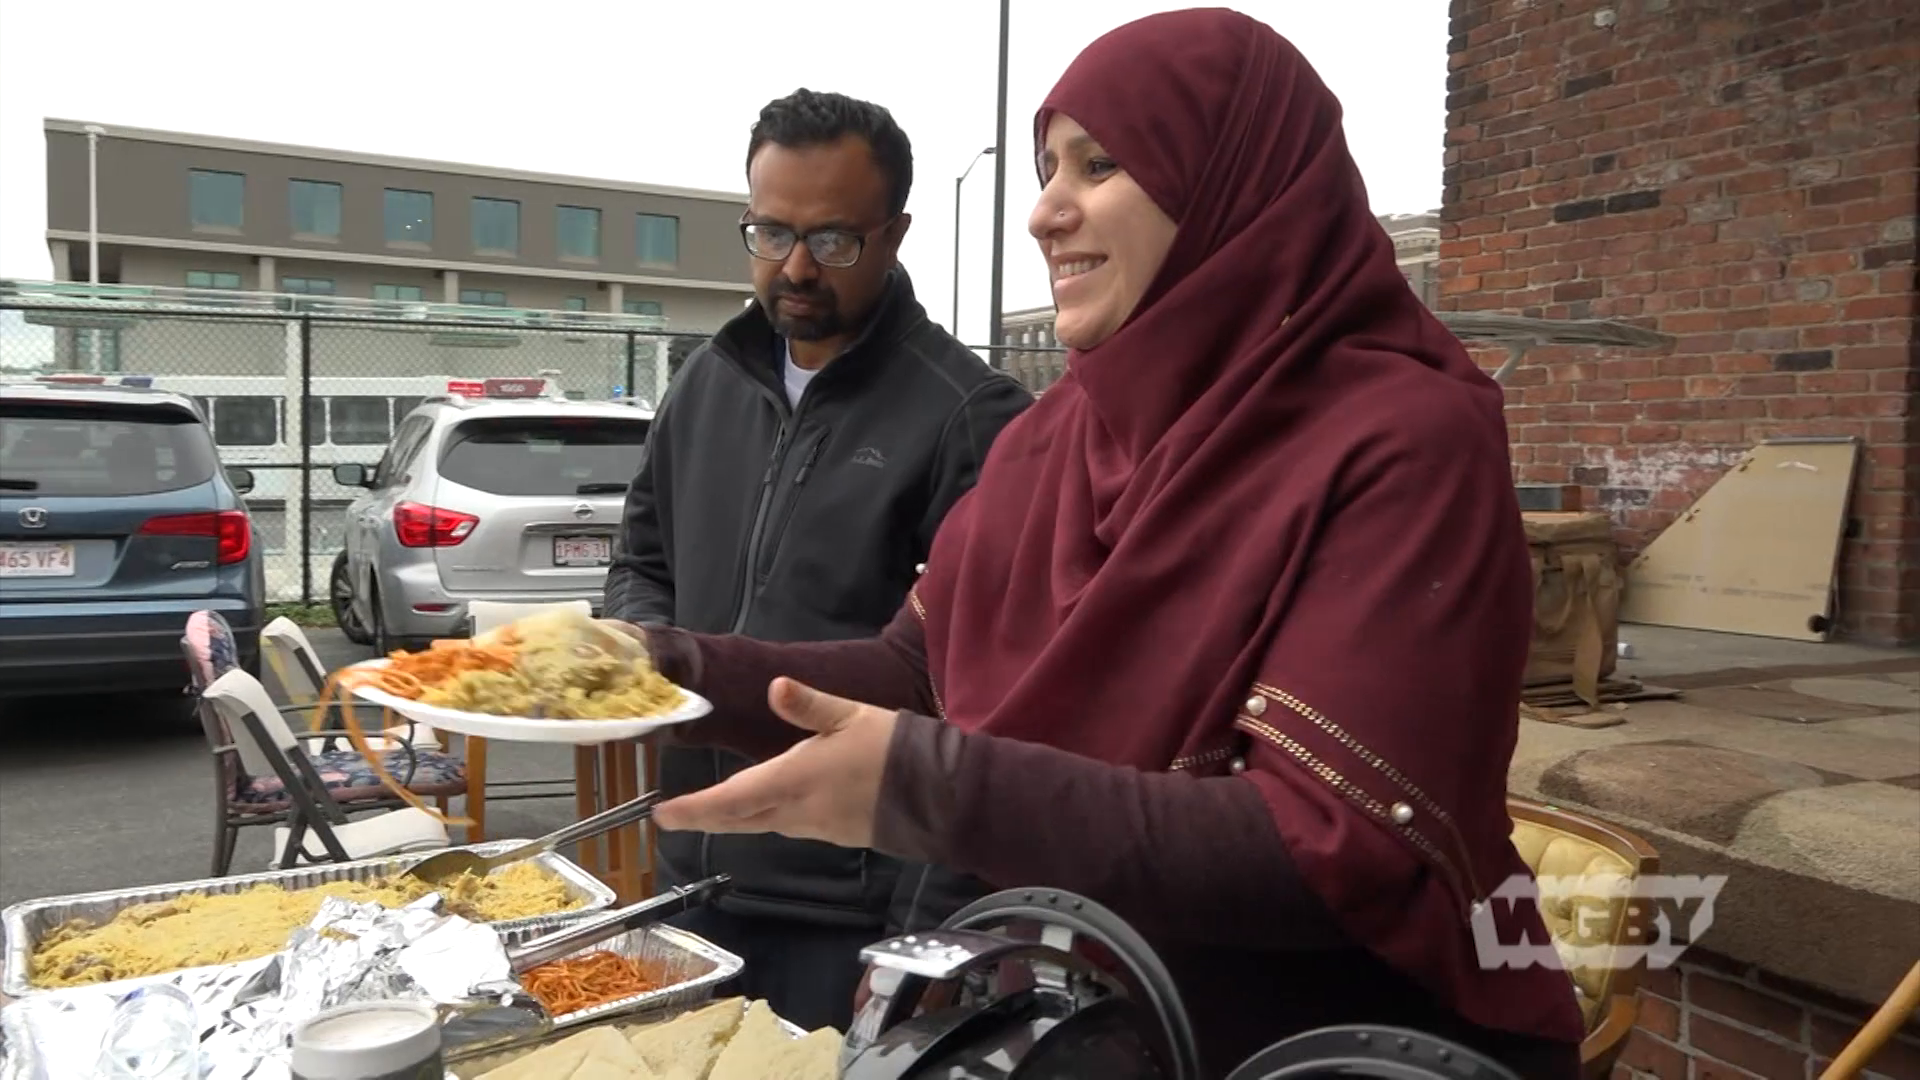 Seeing a need in their local community, Khuram & Sadia Abbasi began offering a free community lunch at their furniture store in Springfield on Fridays.